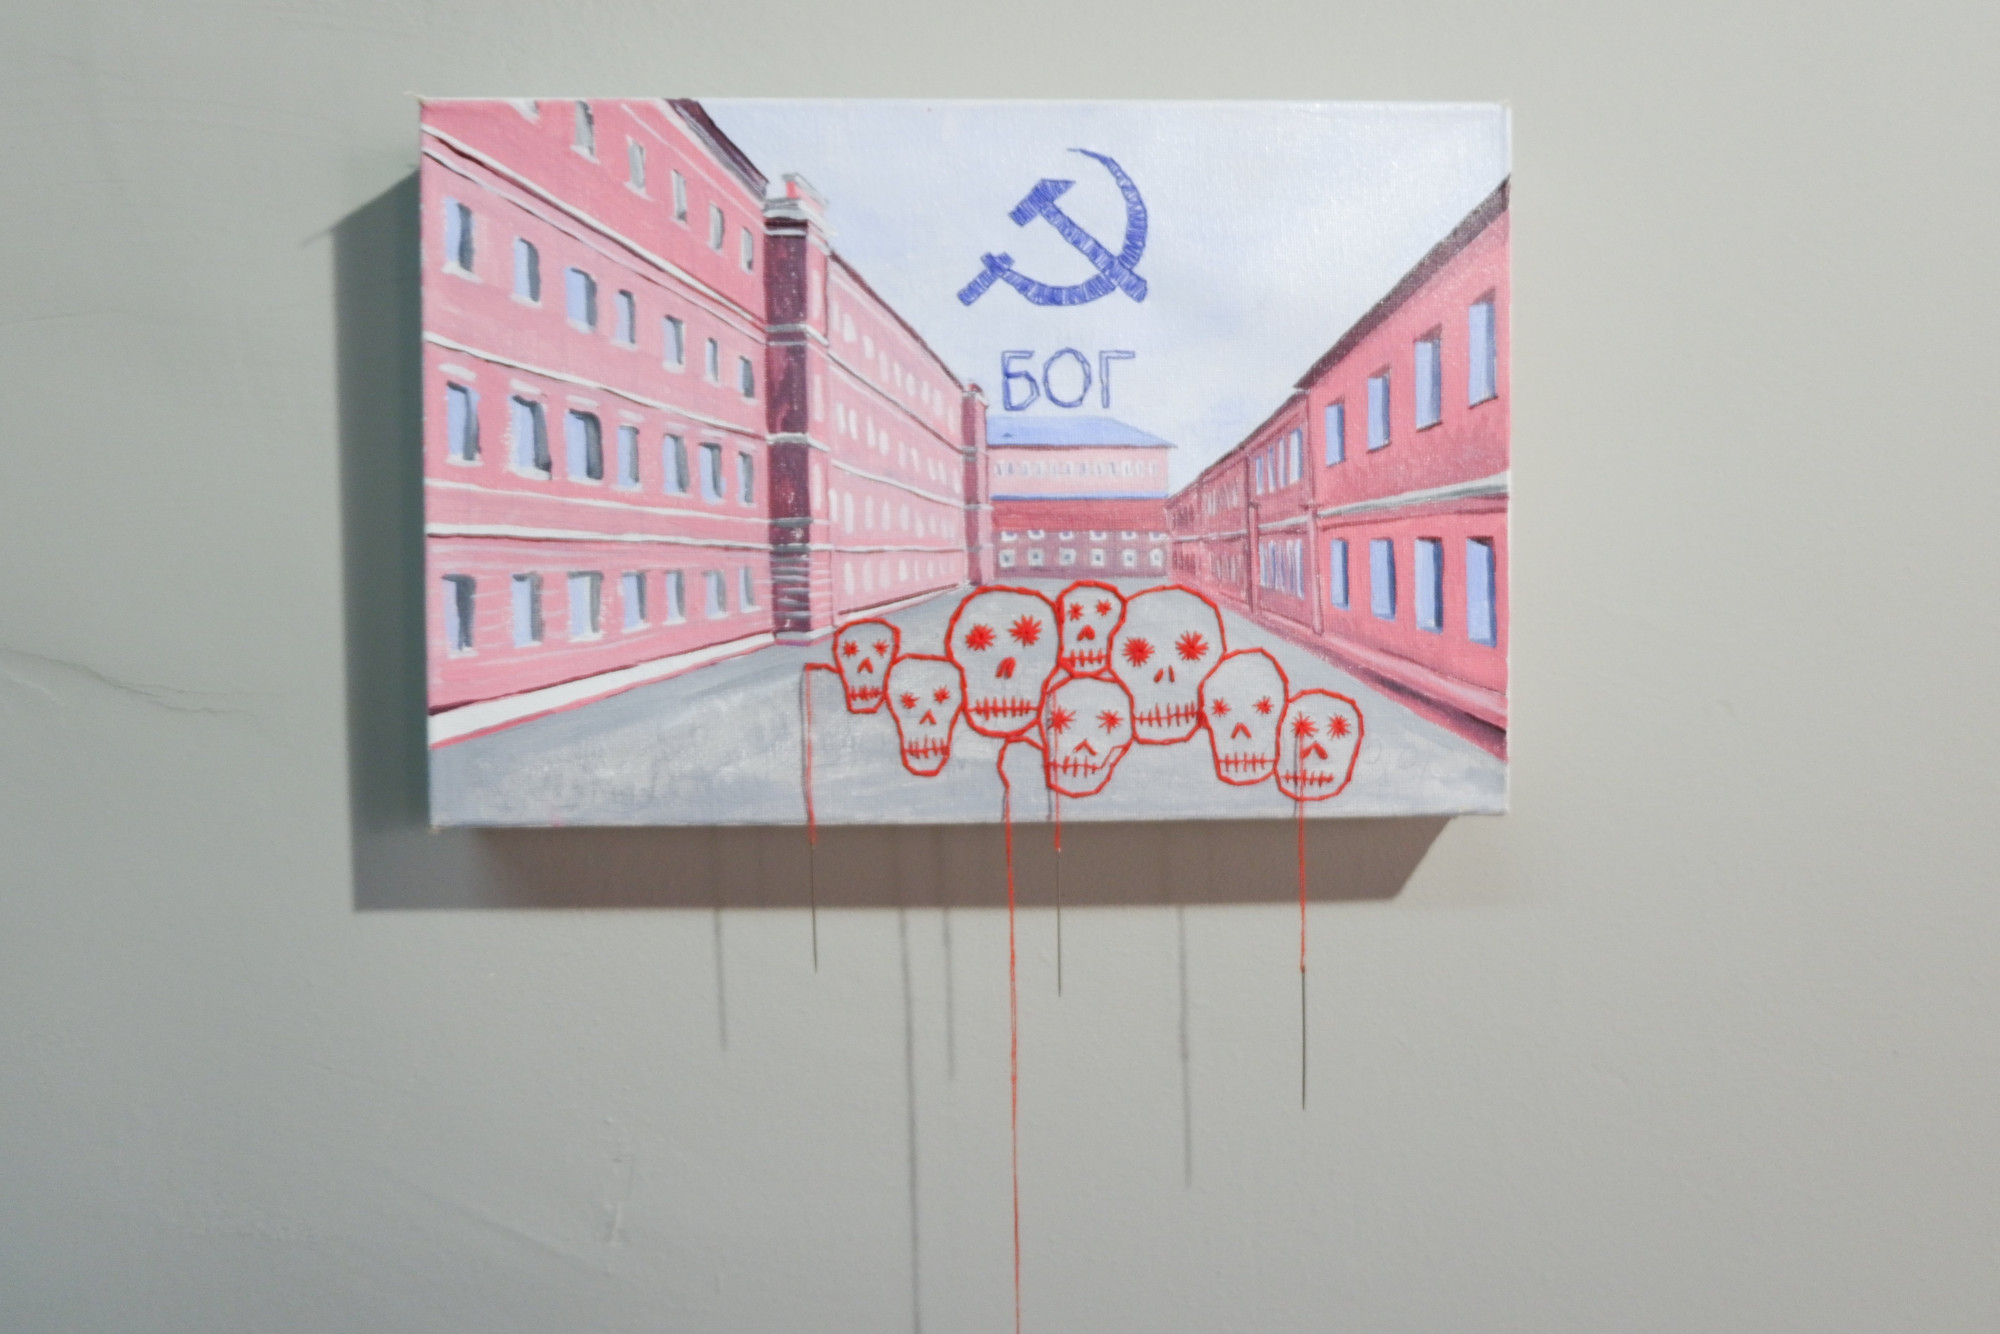 Vladimir Central, 2019. From the To Spite the Motherland project